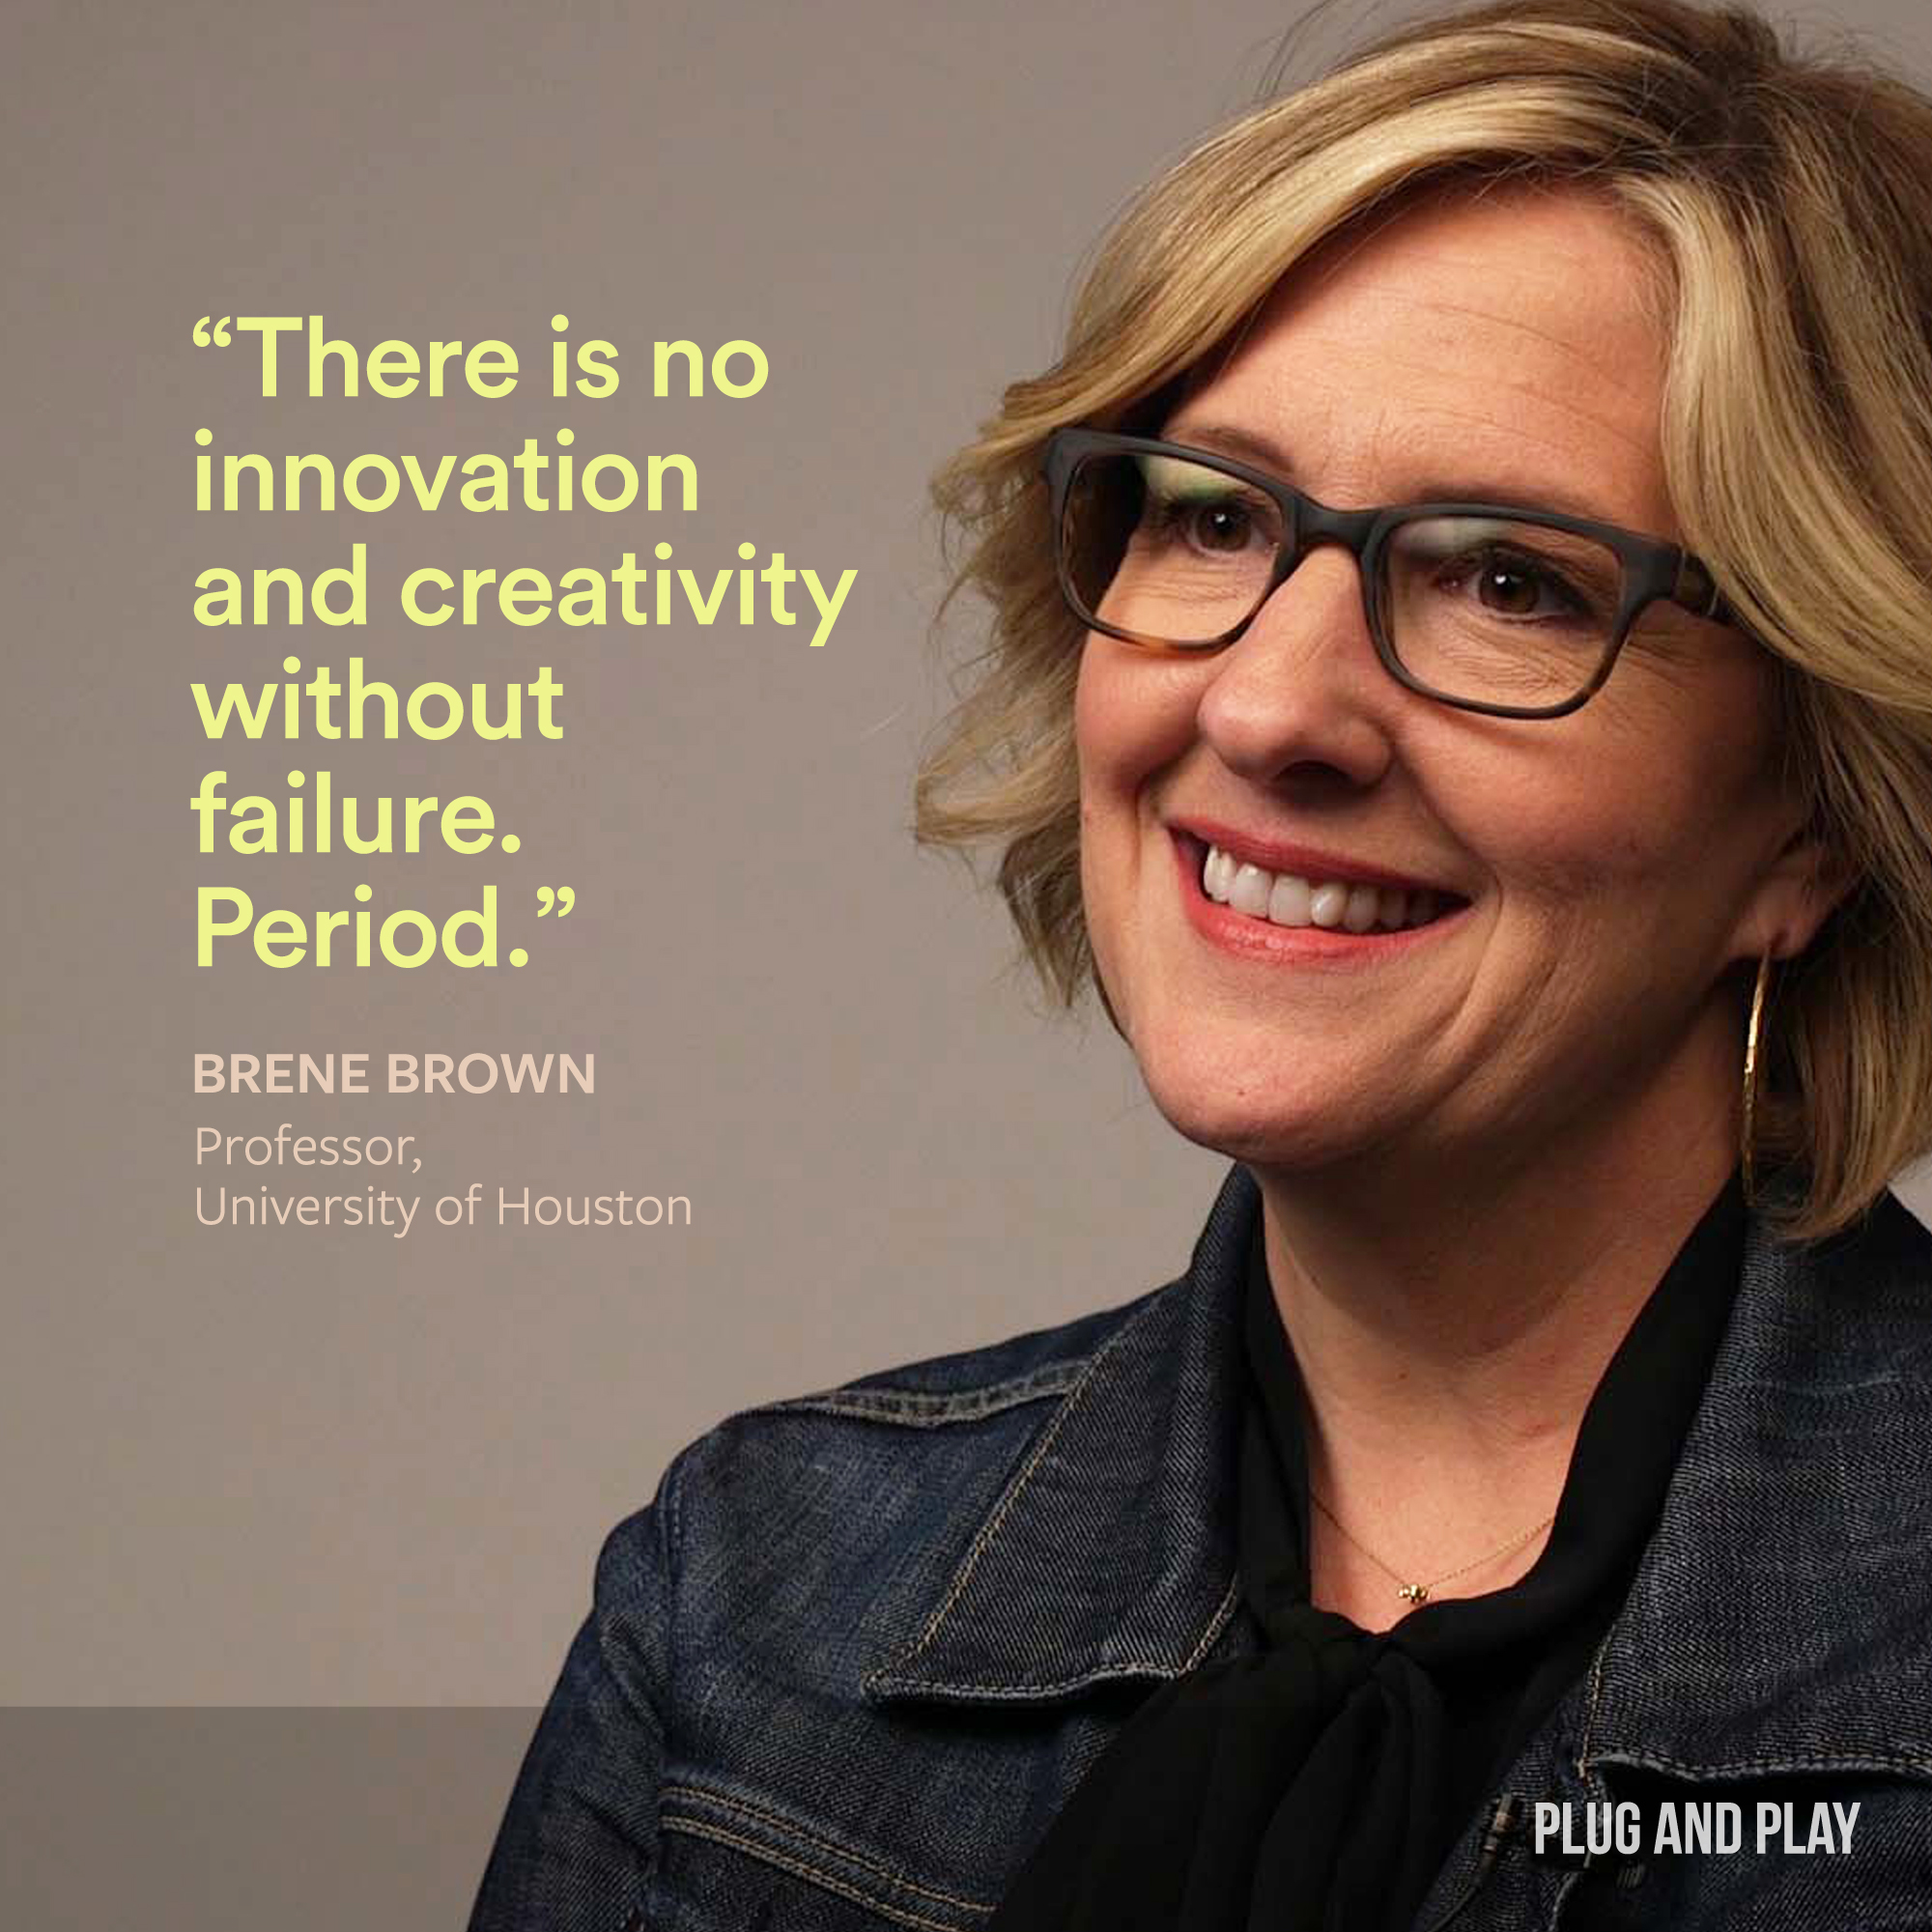 brene brown female entrepreneur